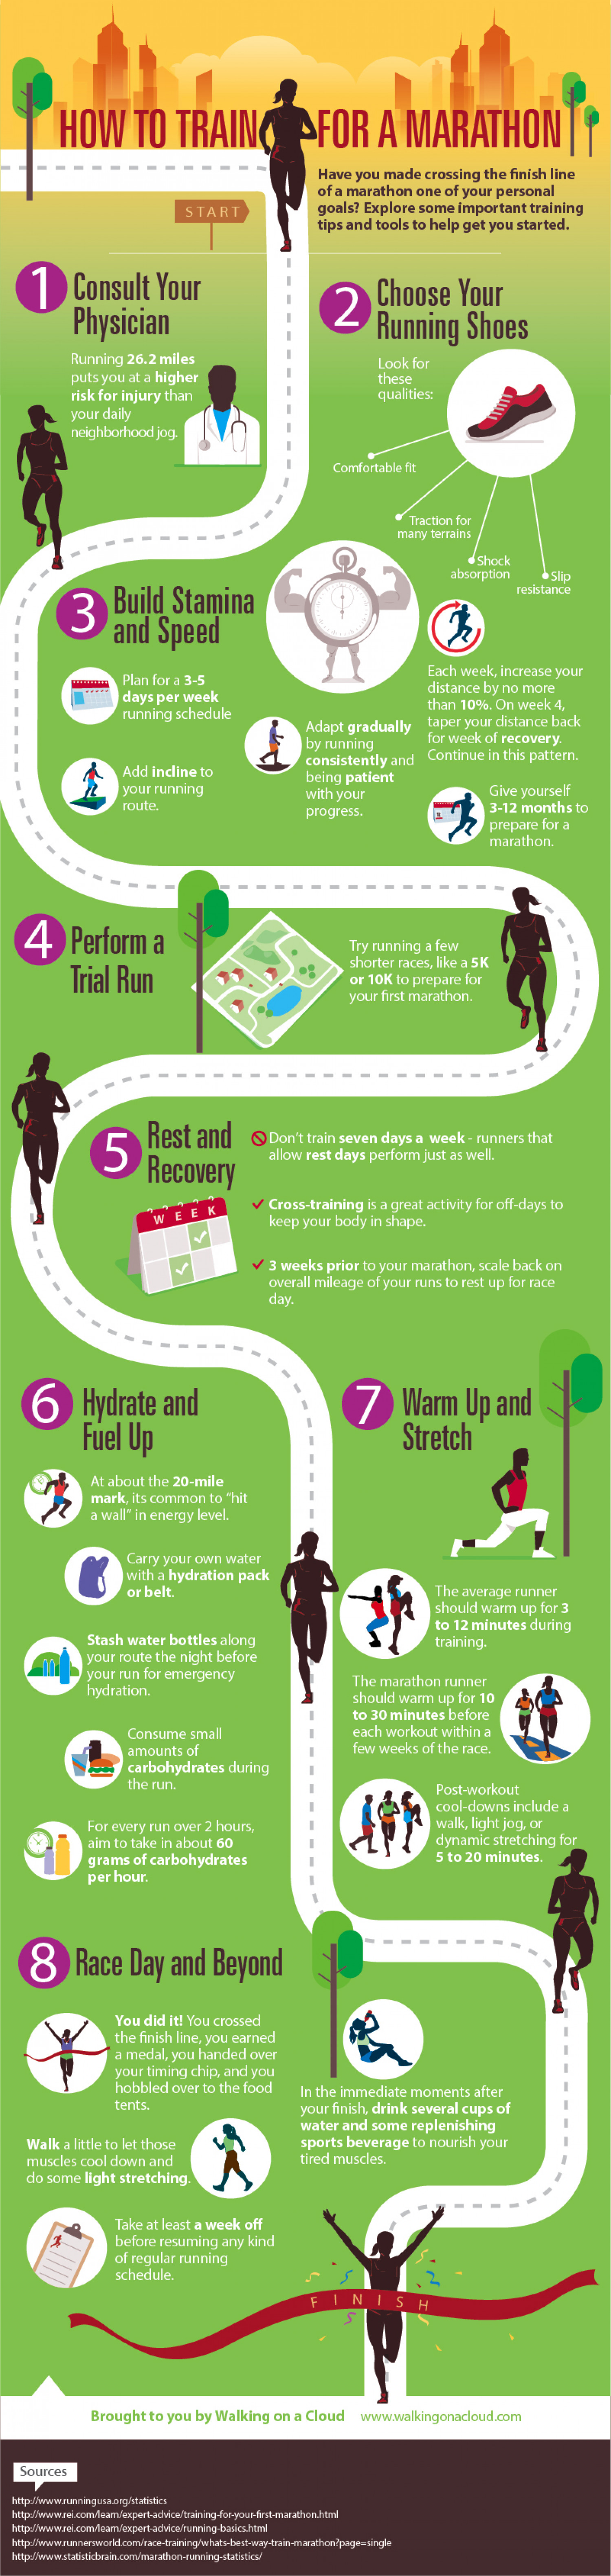 How To Train For A Marathon Infographic